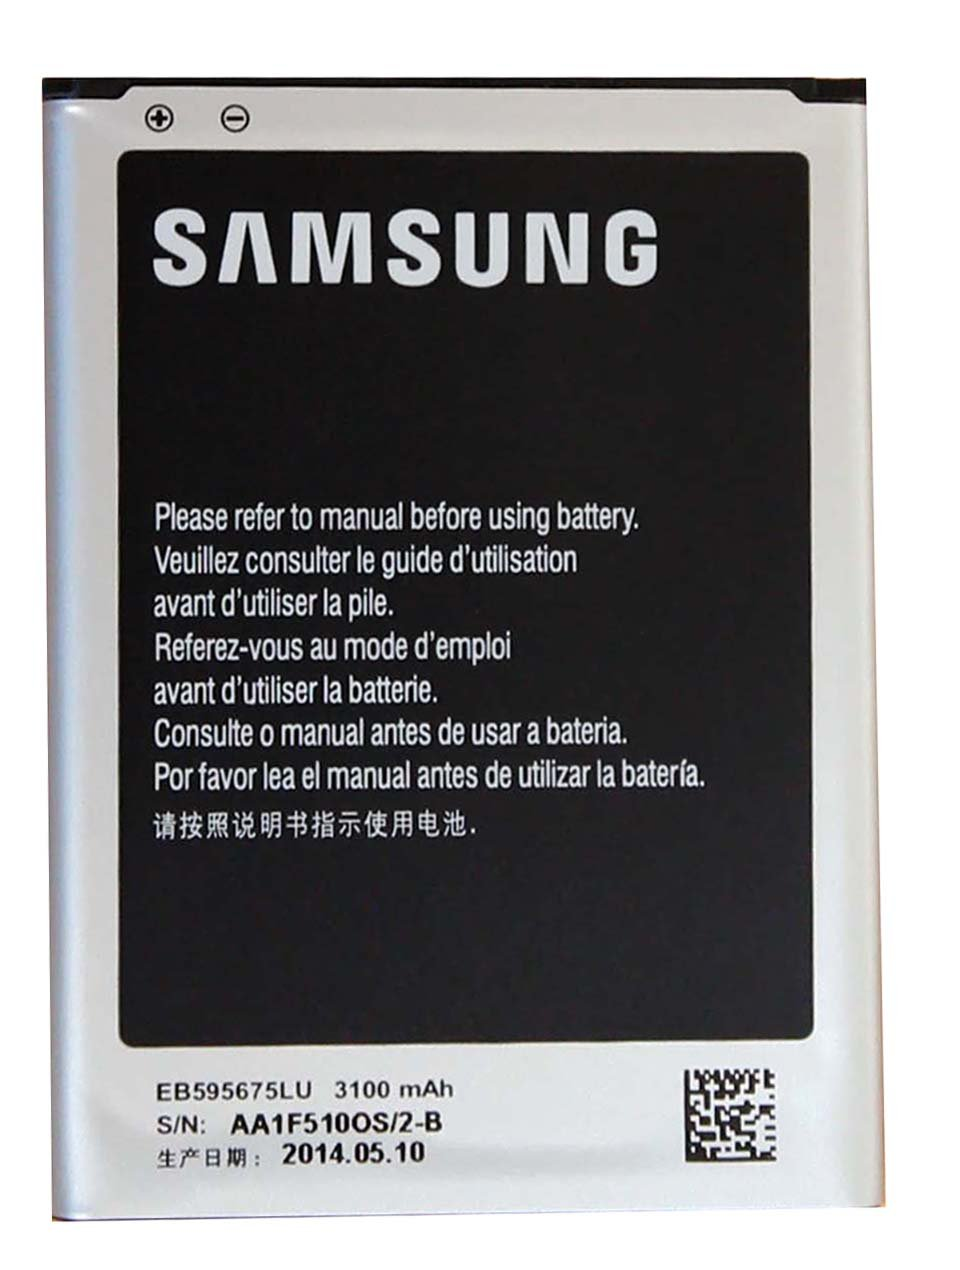 Samsung EB595675LU Original Battery (3100 mAH) for Samsung Galaxy Note 2 II N7100 CSAM7100LI02